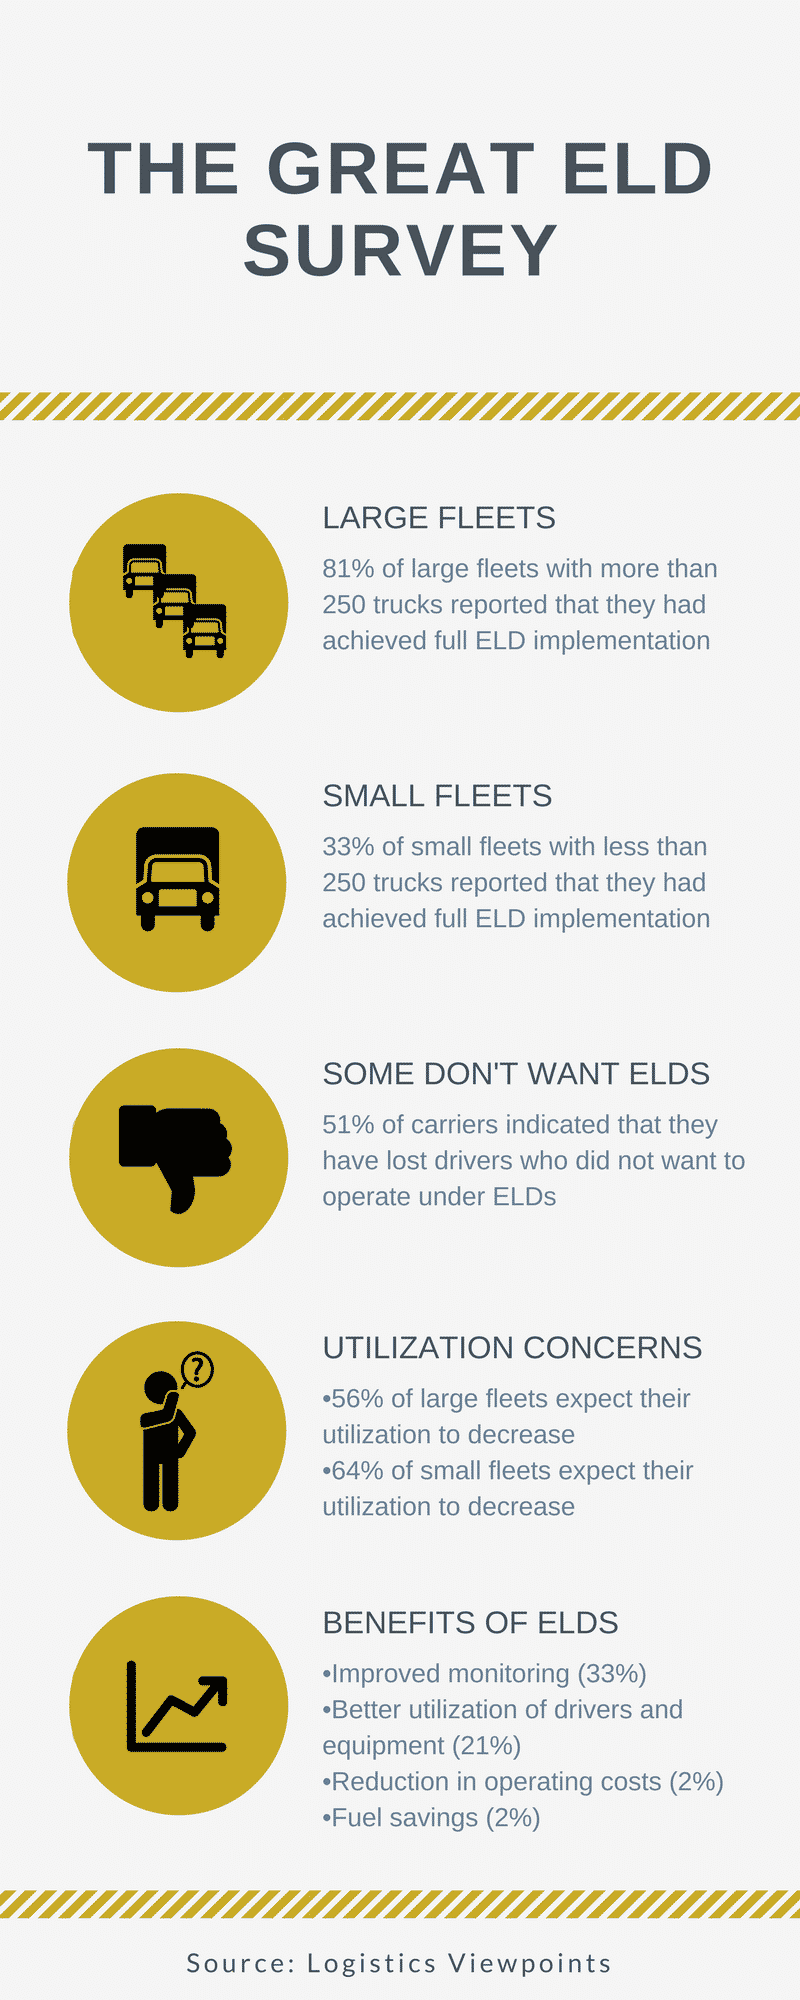 The Great ELD Survey